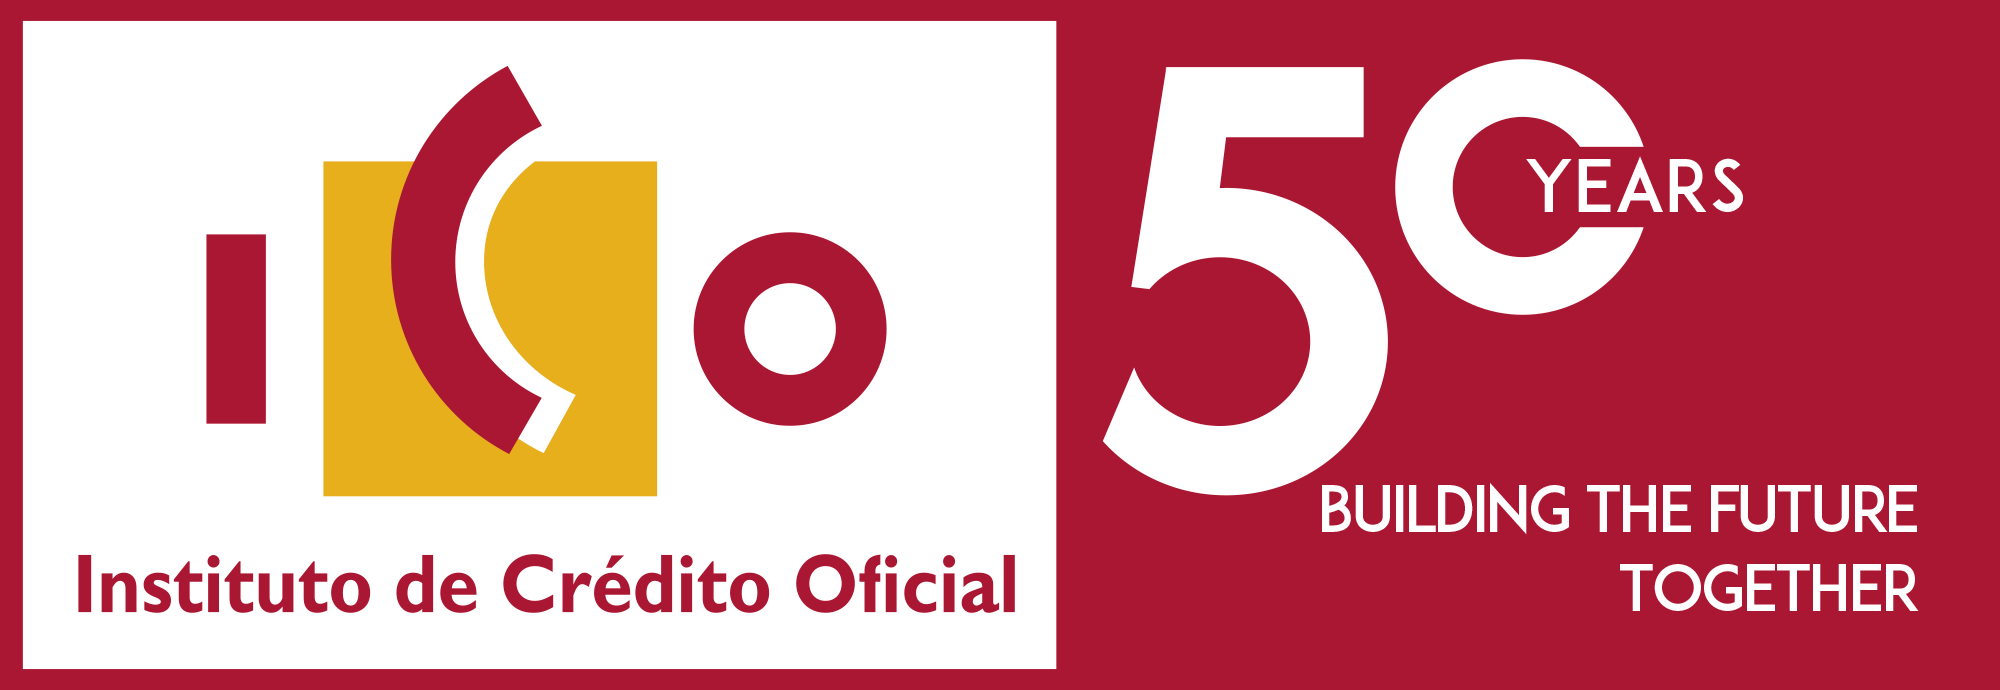 Logo ICO 50 years working together looking to the future.